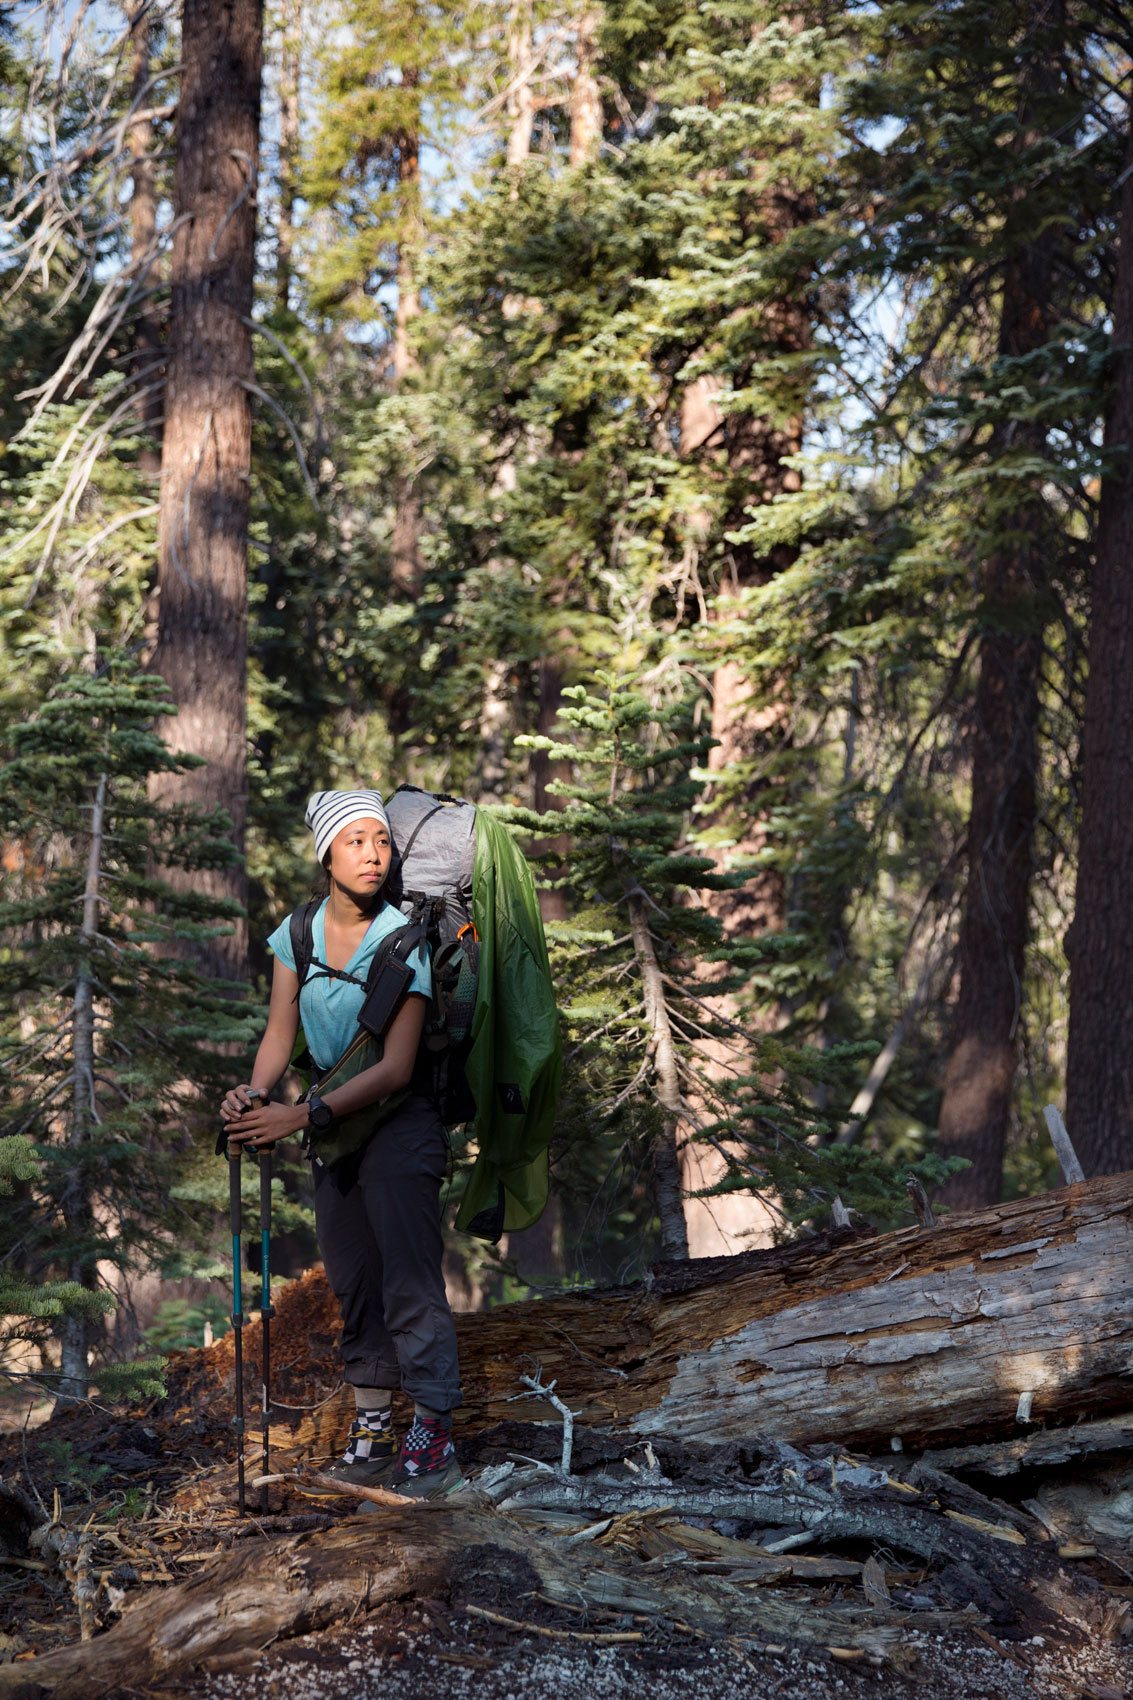 Thru-Hikers-on-John-Muir-Trail-by-Justin-Clemons-8-17-49